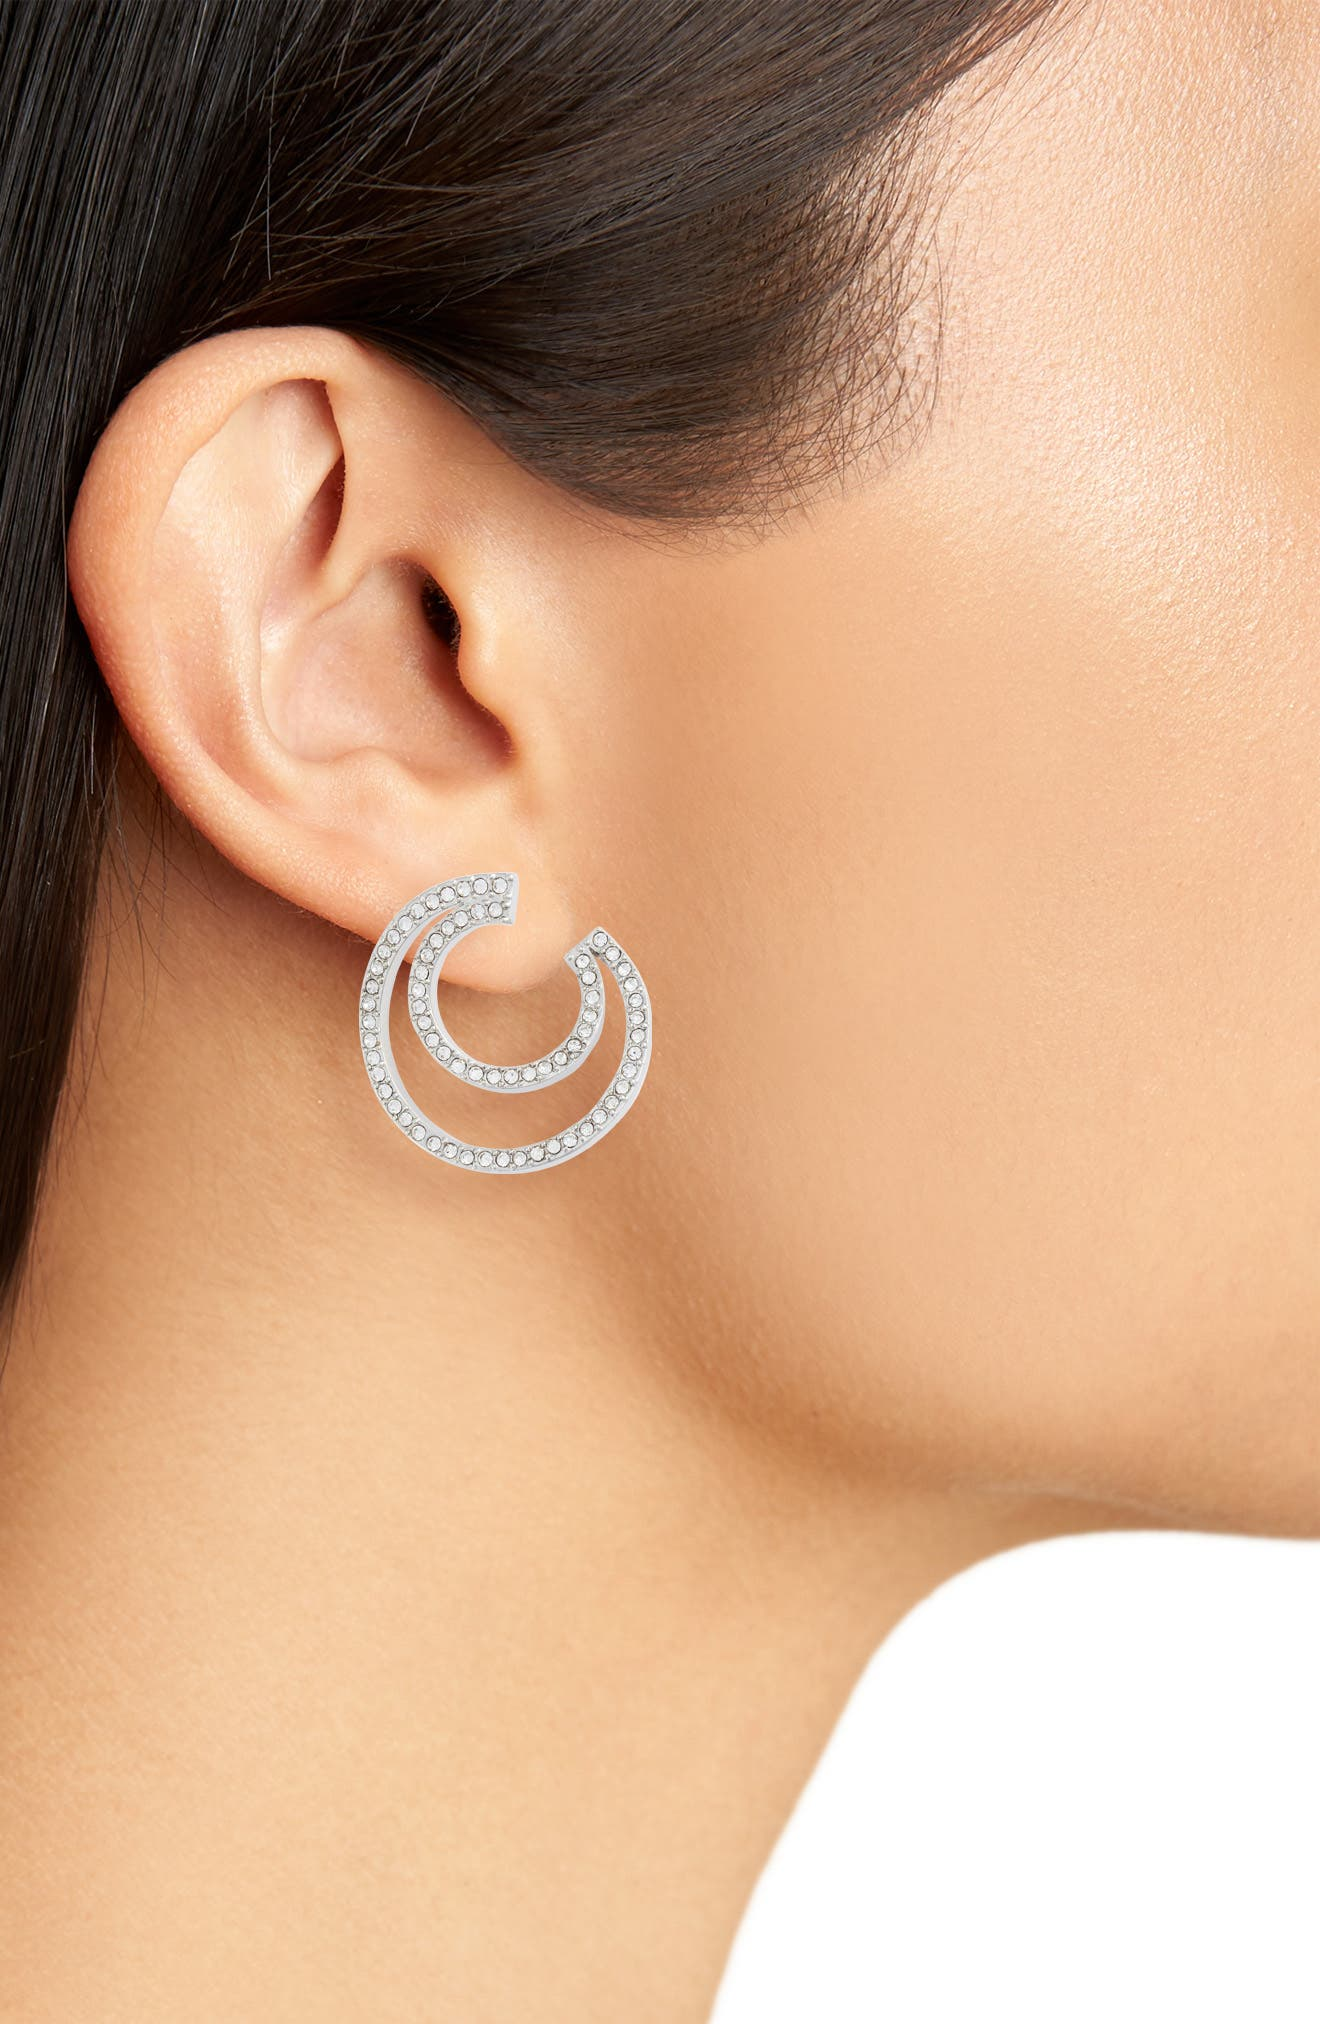 Curved Hoop Earrings,                             Alternate thumbnail 2, color,                             040